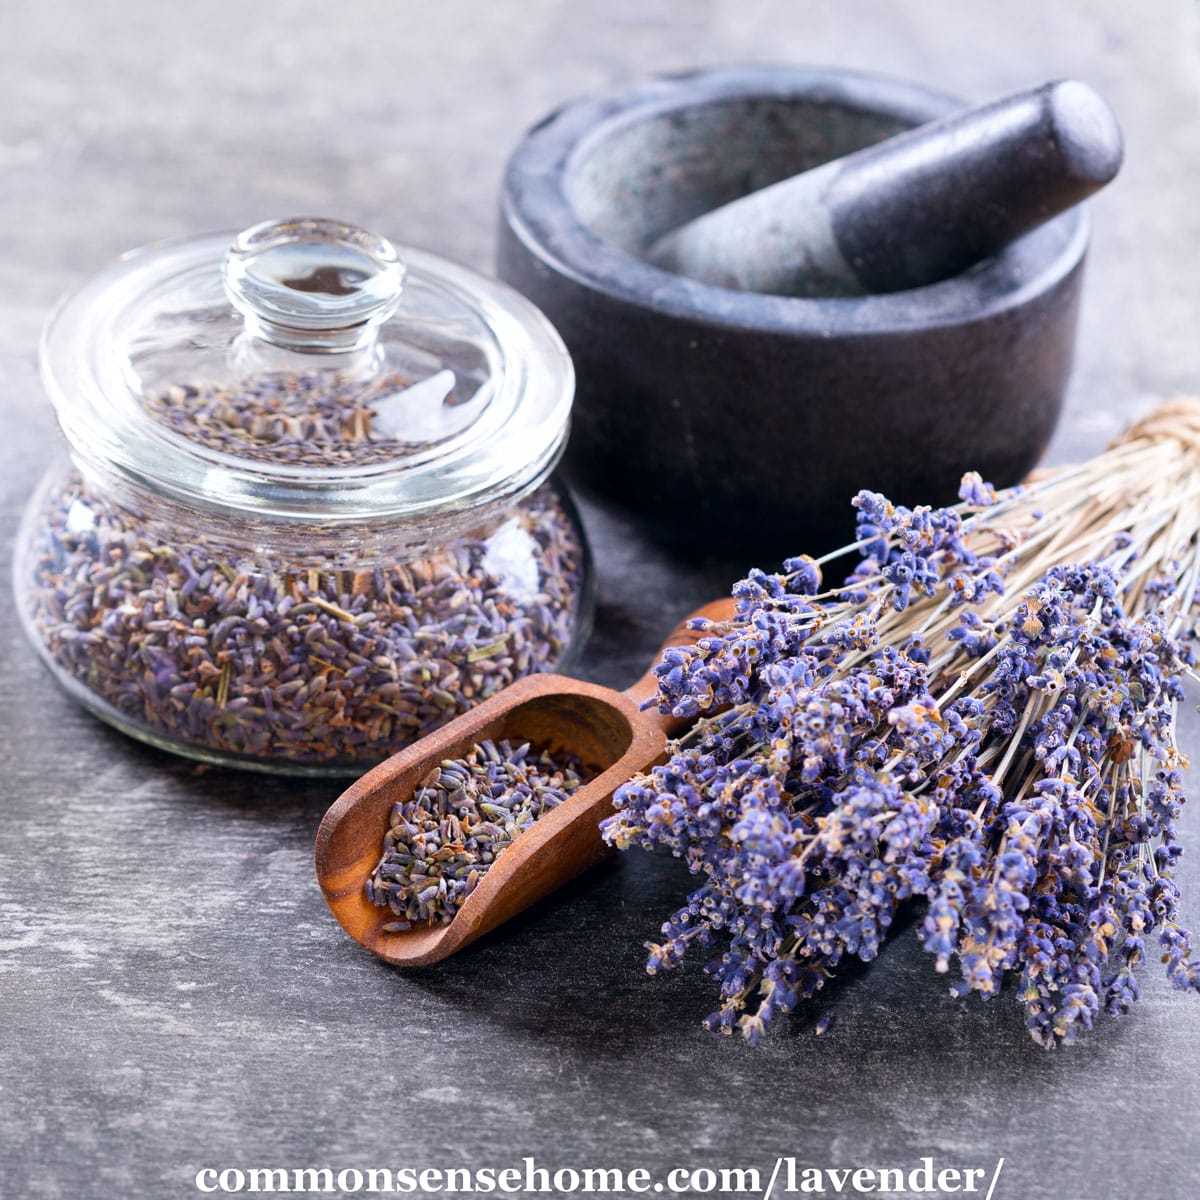 dried lavender blossoms for cooking, crafts, or medicine